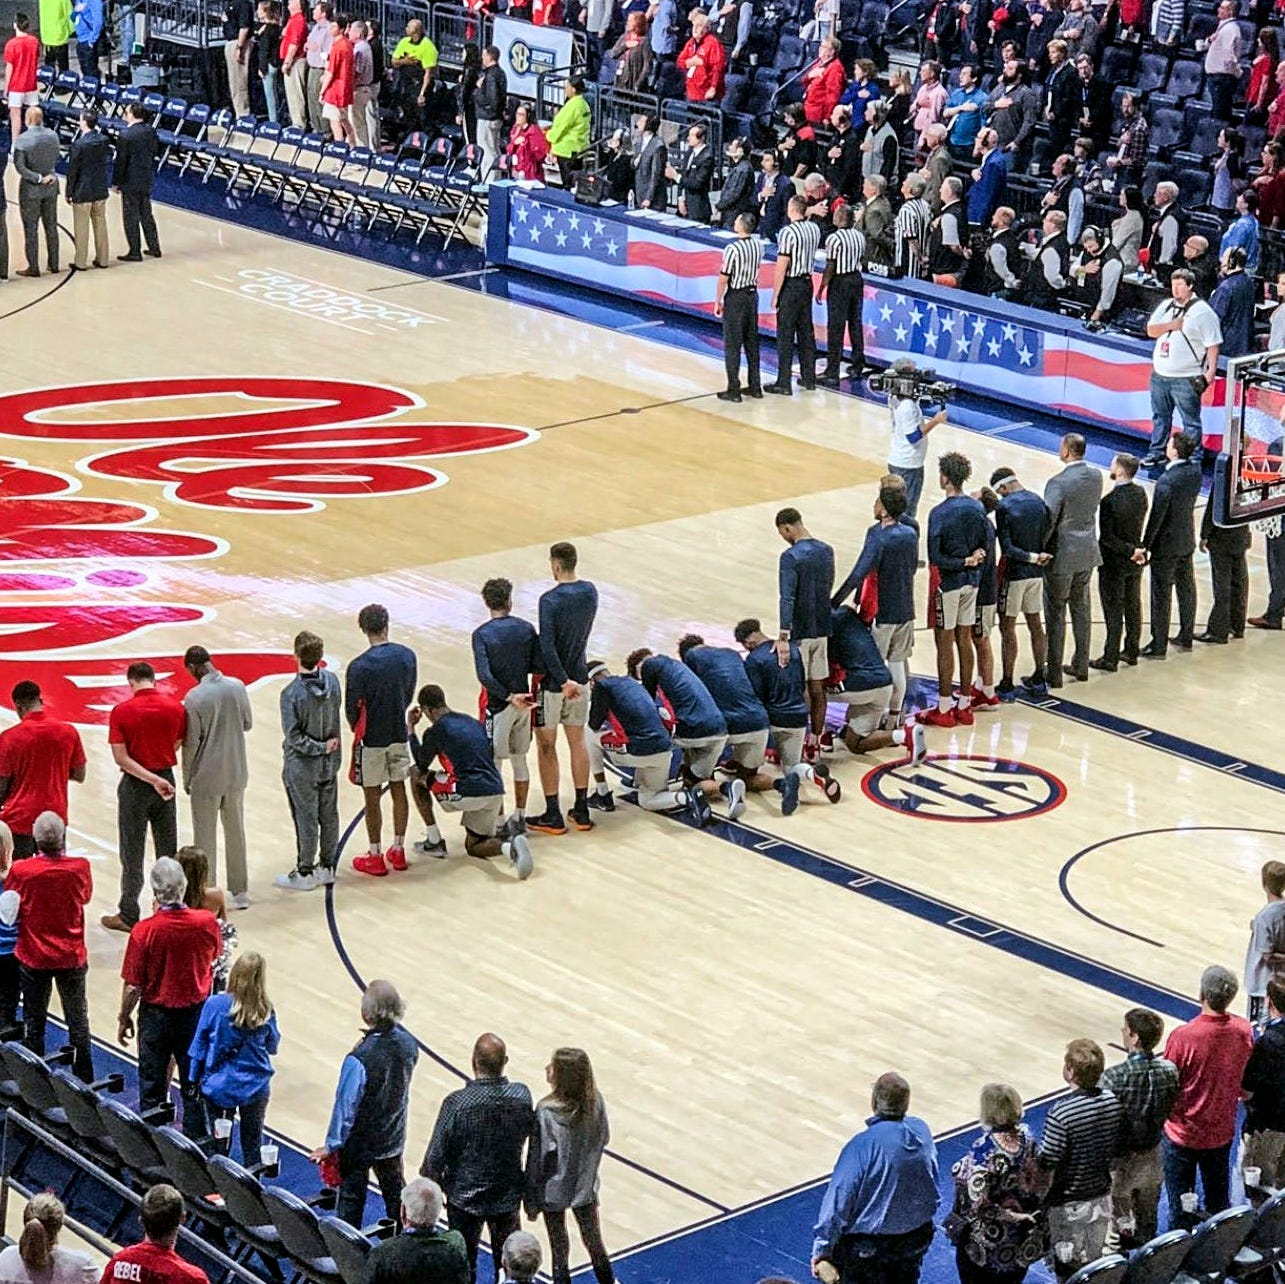 Twitter erupts after Ole Miss basketball players kneel during National Anthem